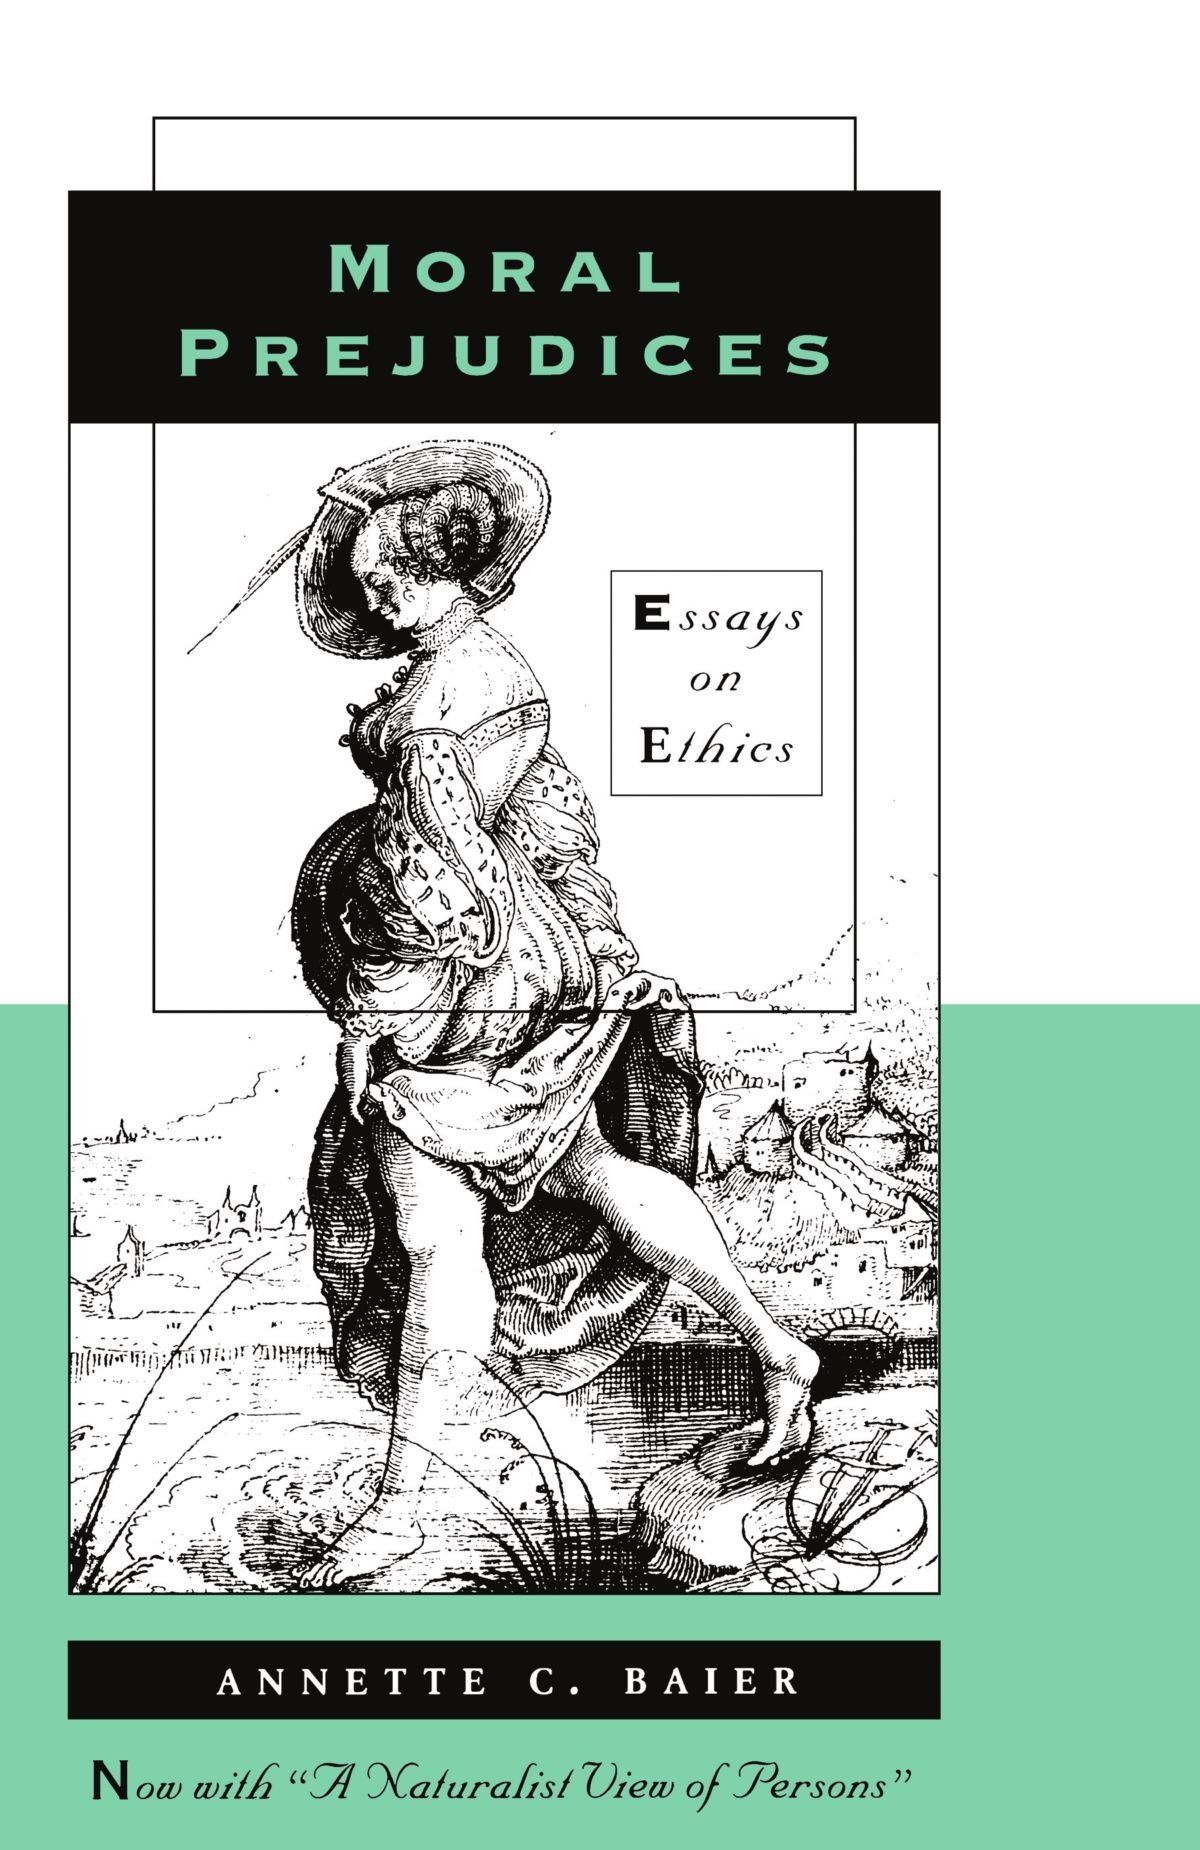 moral prejudices essays on ethics co uk annette c baier moral prejudices essays on ethics co uk annette c baier 9780674587168 books